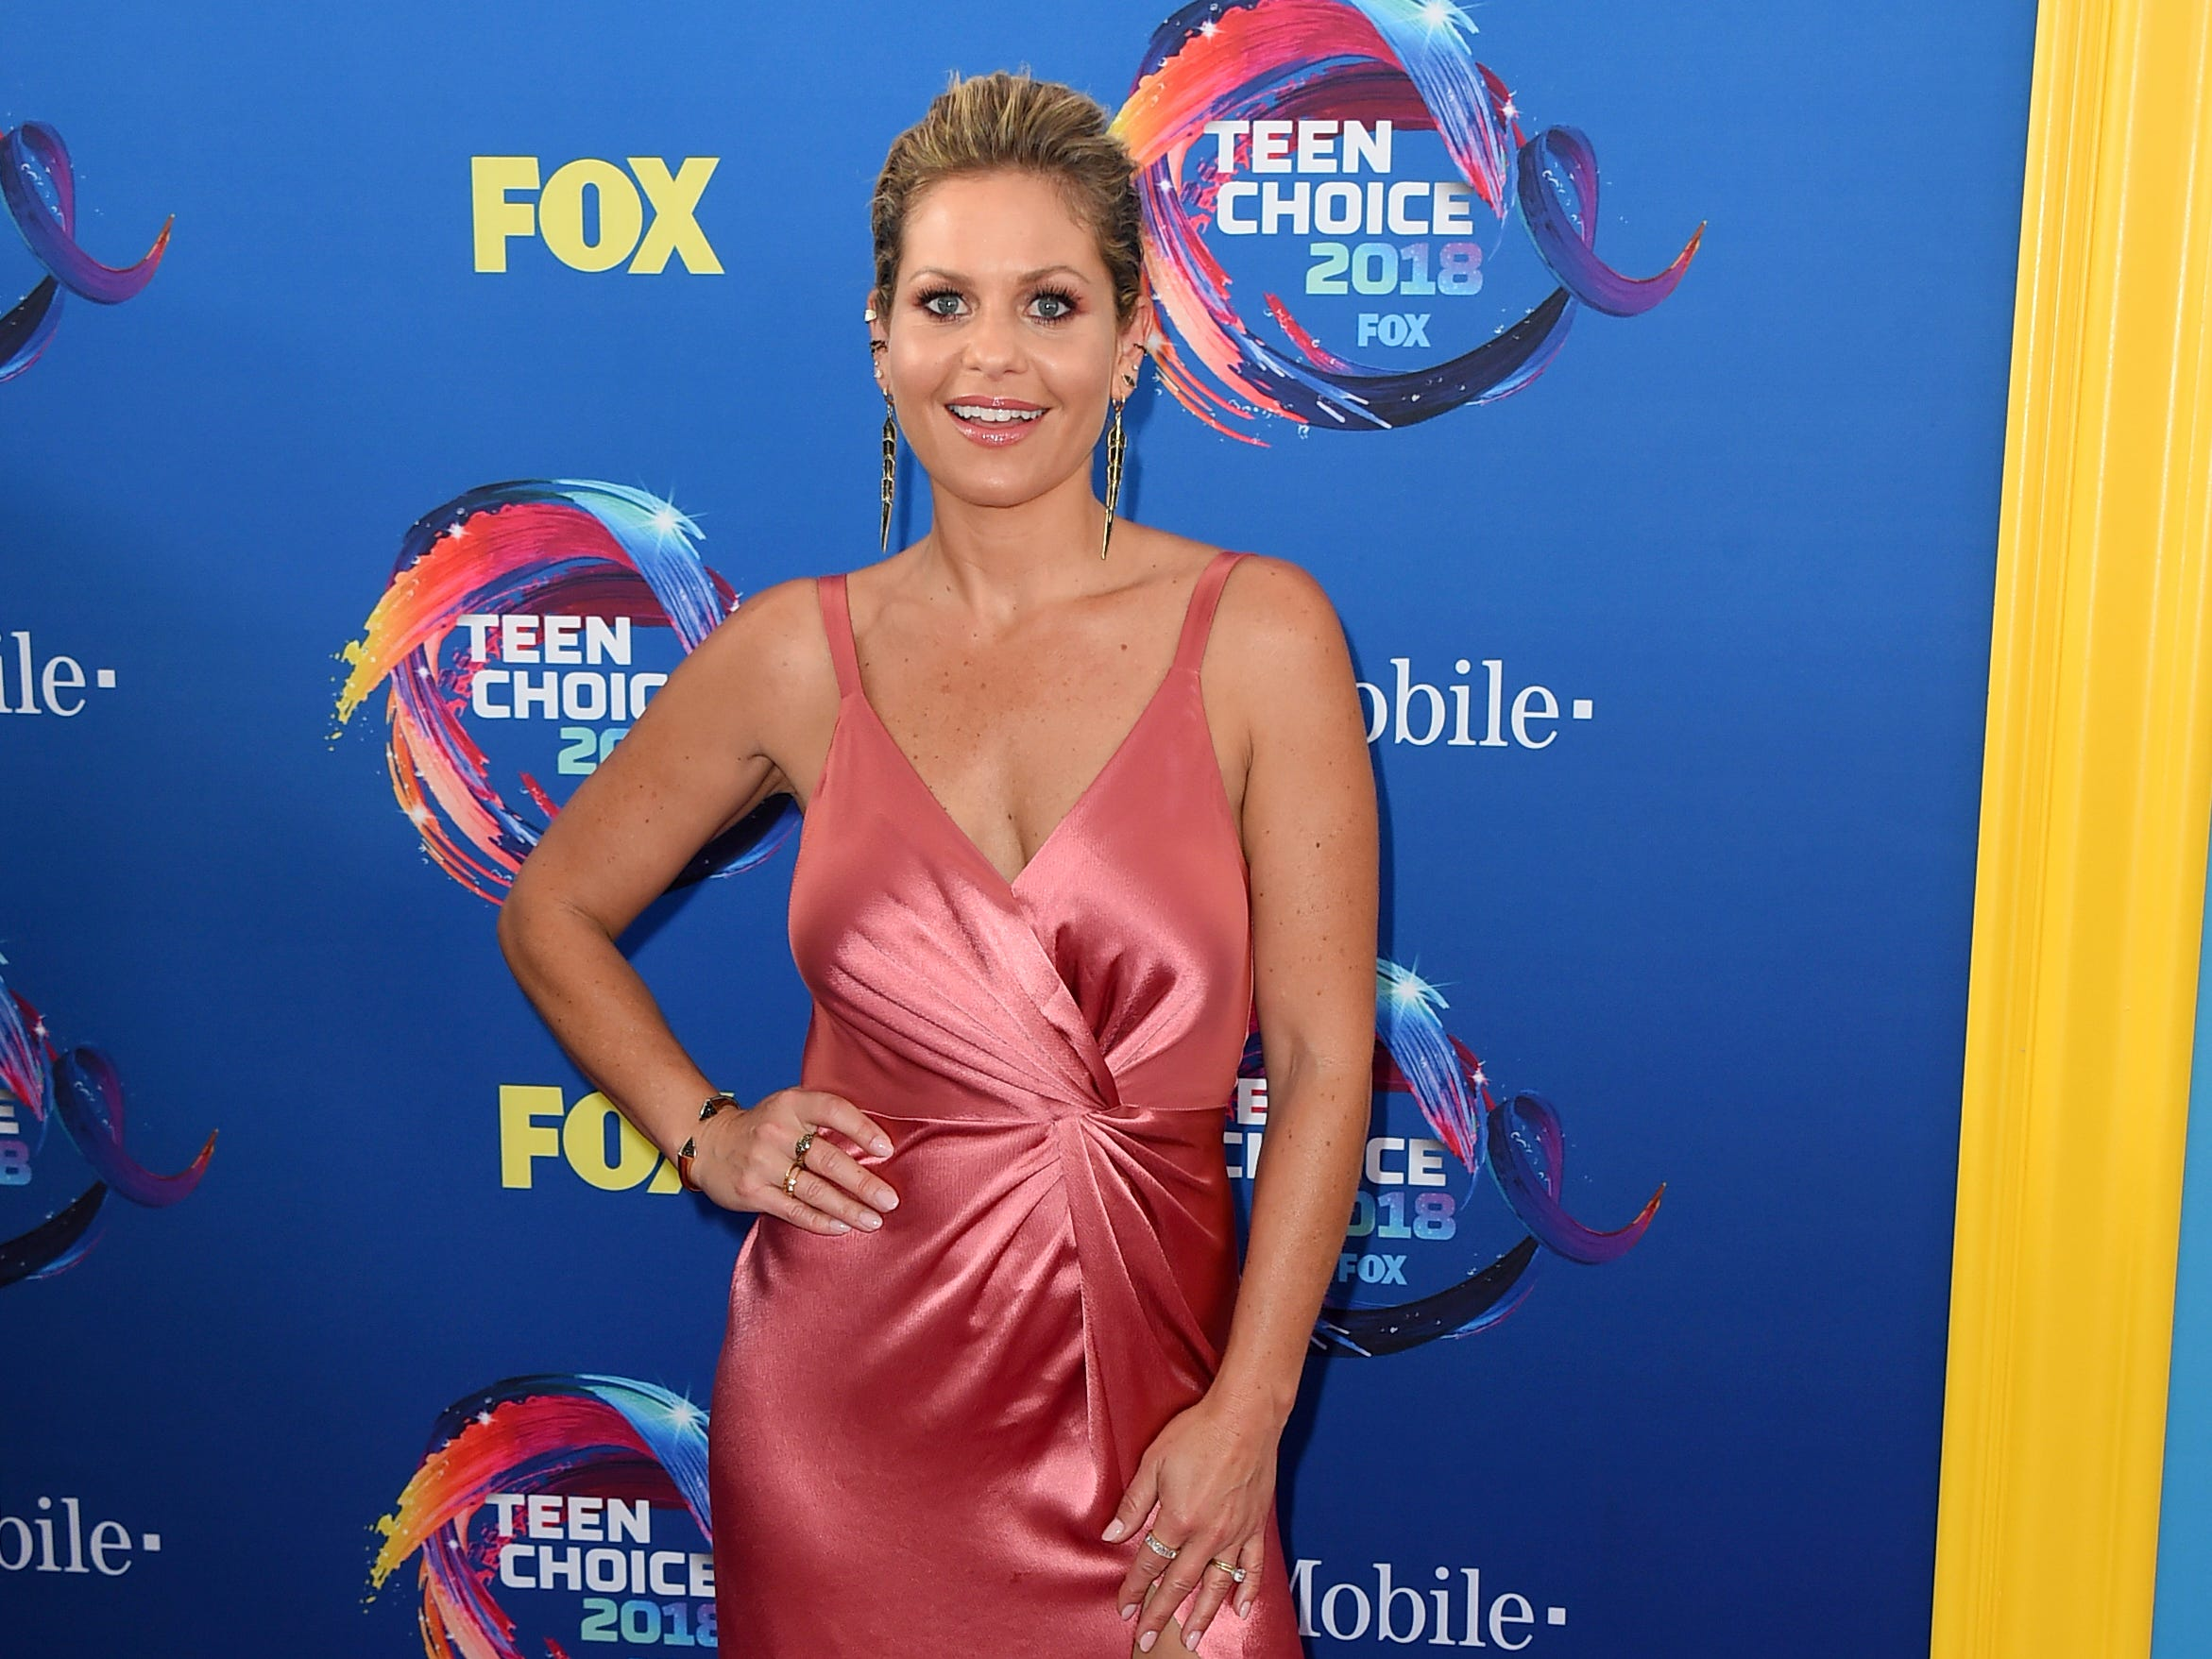 Candace Cameron-Bure arrives at the Teen Choice Awards at The Forum on Sunday, Aug. 12, 2018, in Inglewood, Calif. (Photo by Jordan Strauss/Invision/AP) ORG XMIT: CAPM141